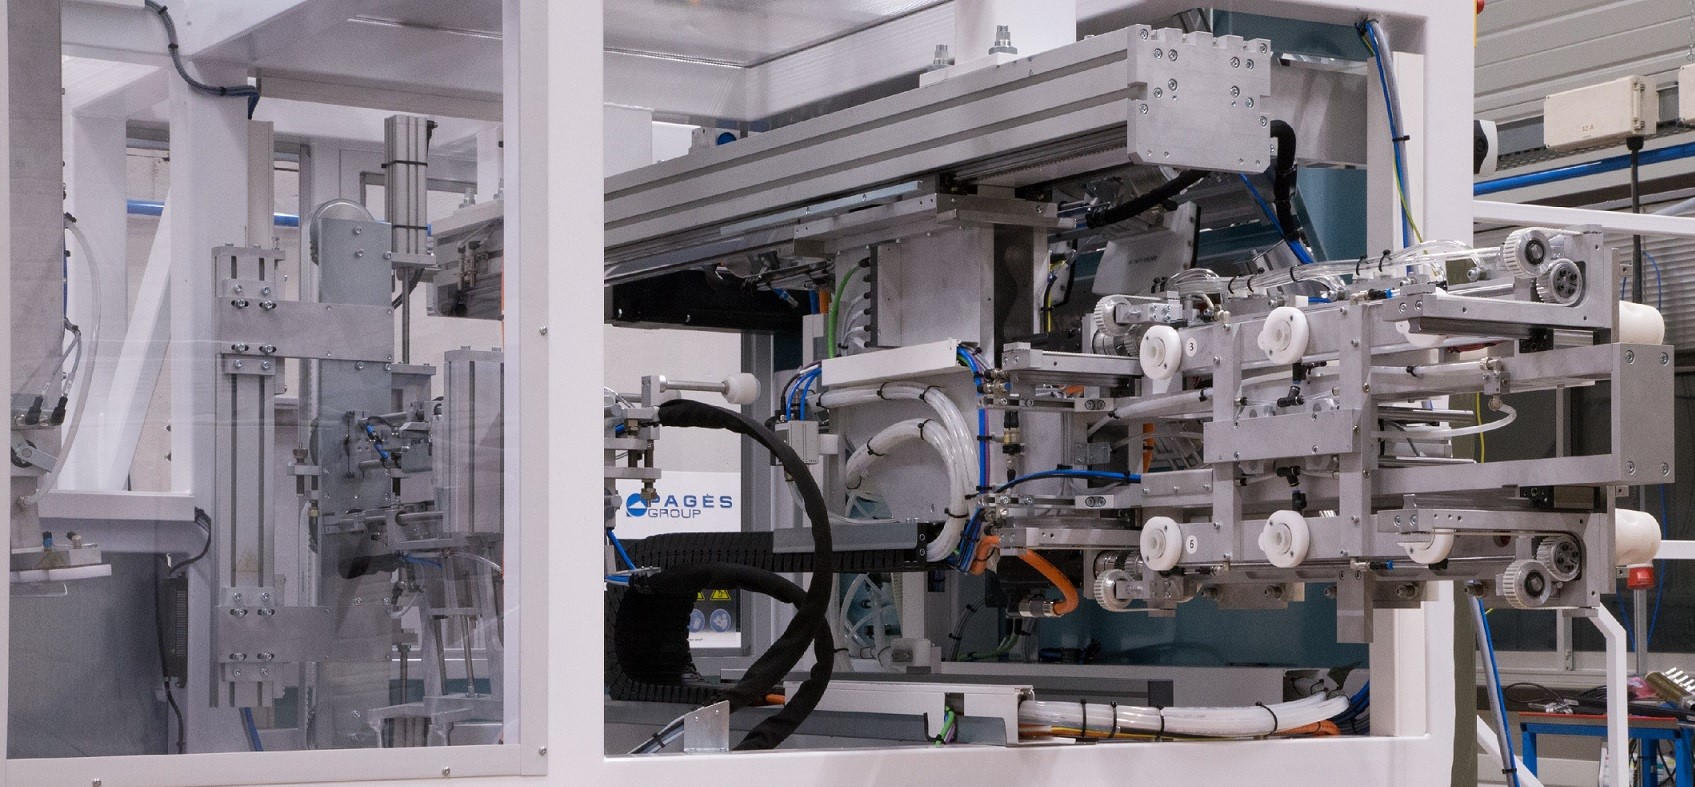 Cerea acquires the automation systems specialist Pagès Group from InnovaFonds